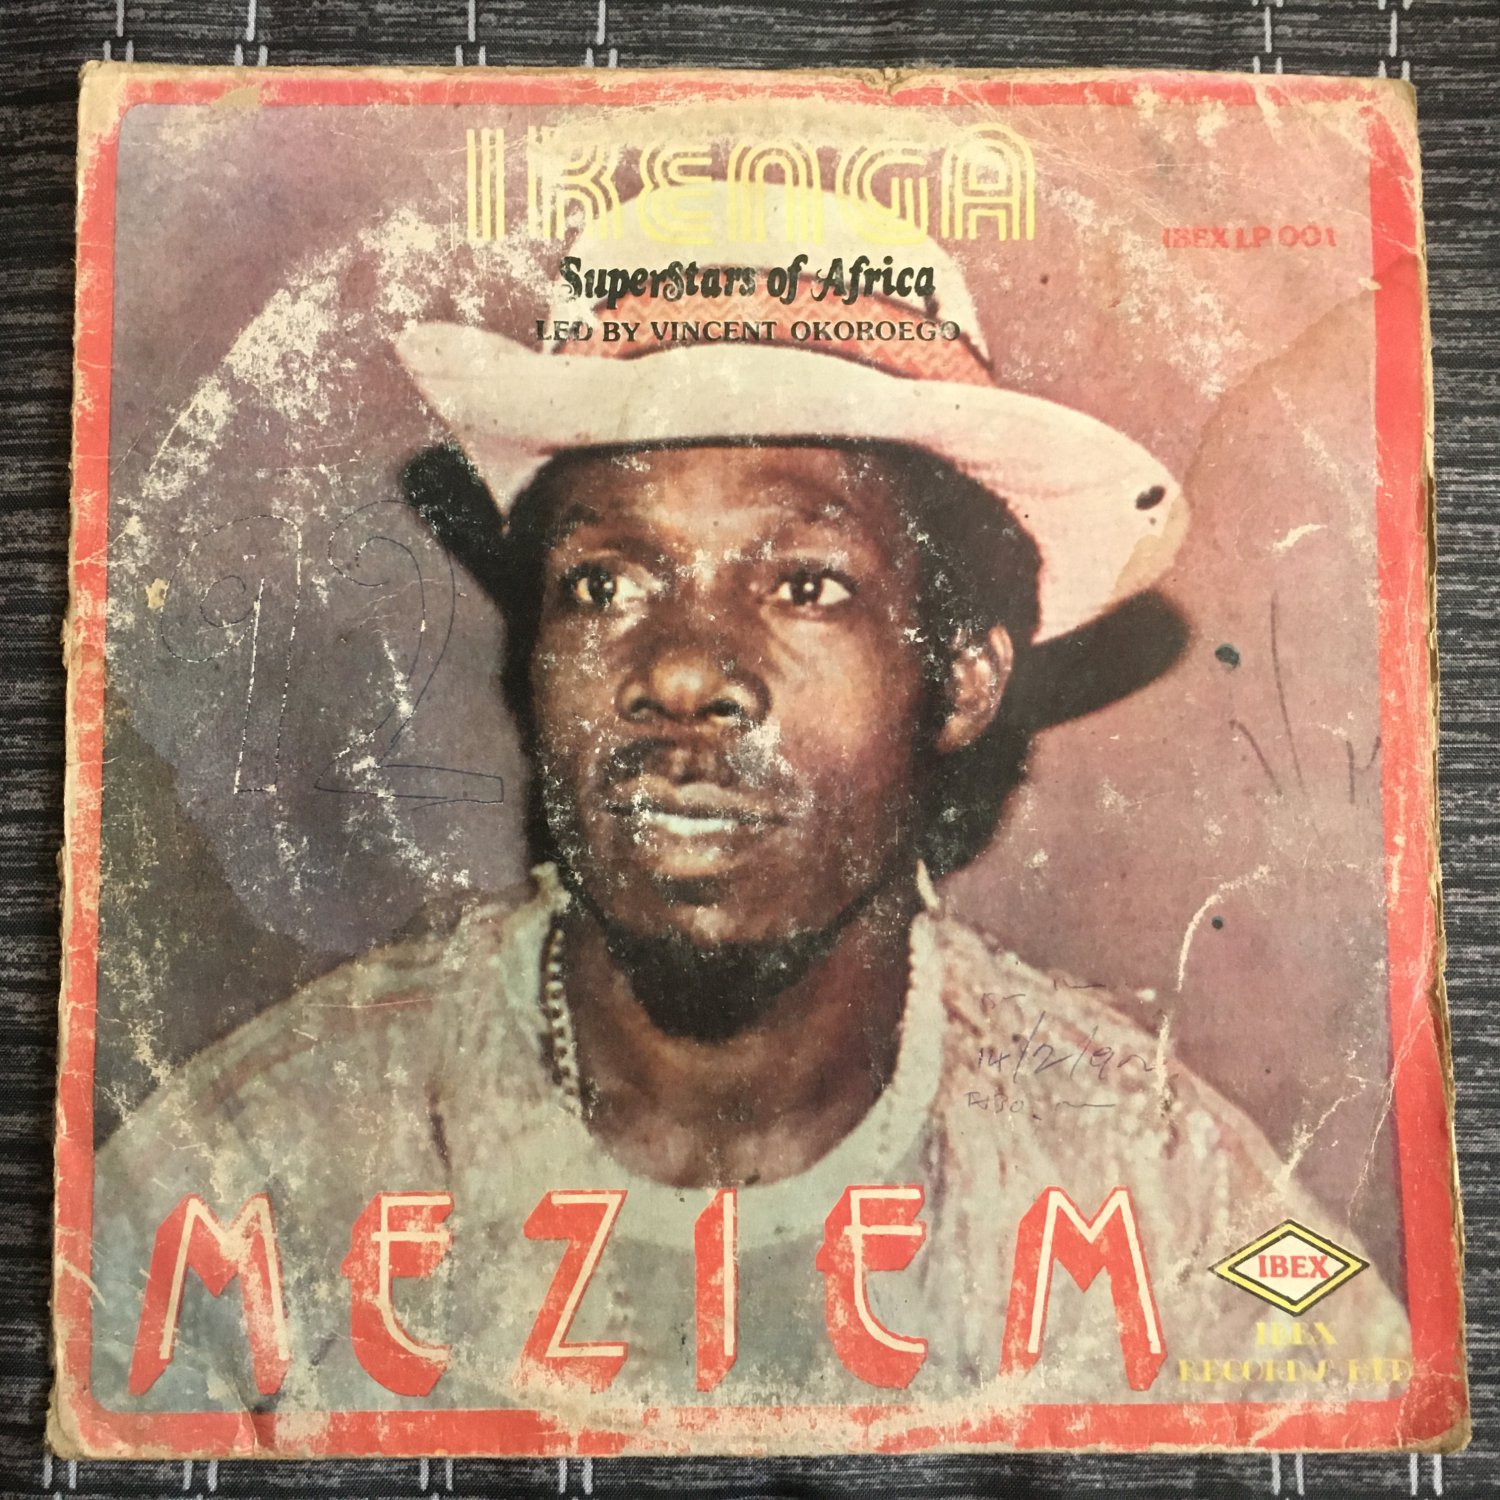 IKENGA SUPERSTARS OF AFRICA LP meziem NIGERIA mp3 LISTEN